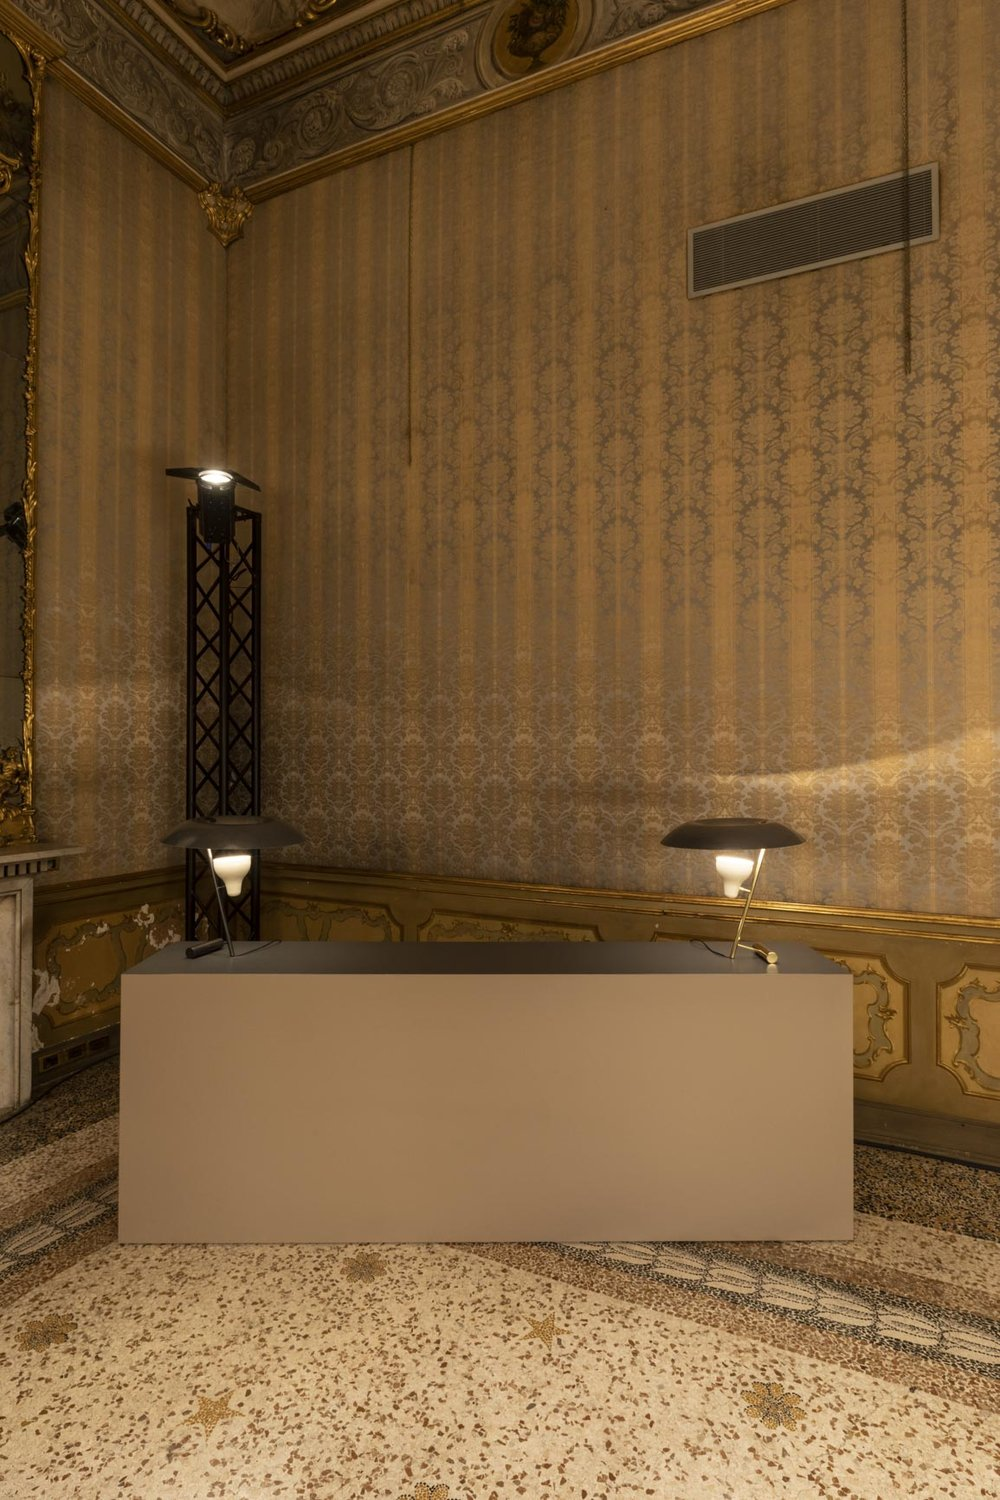 Astep exhibition for Salone del Mobile at Palazzo Litta | Model 548 Table Lamp